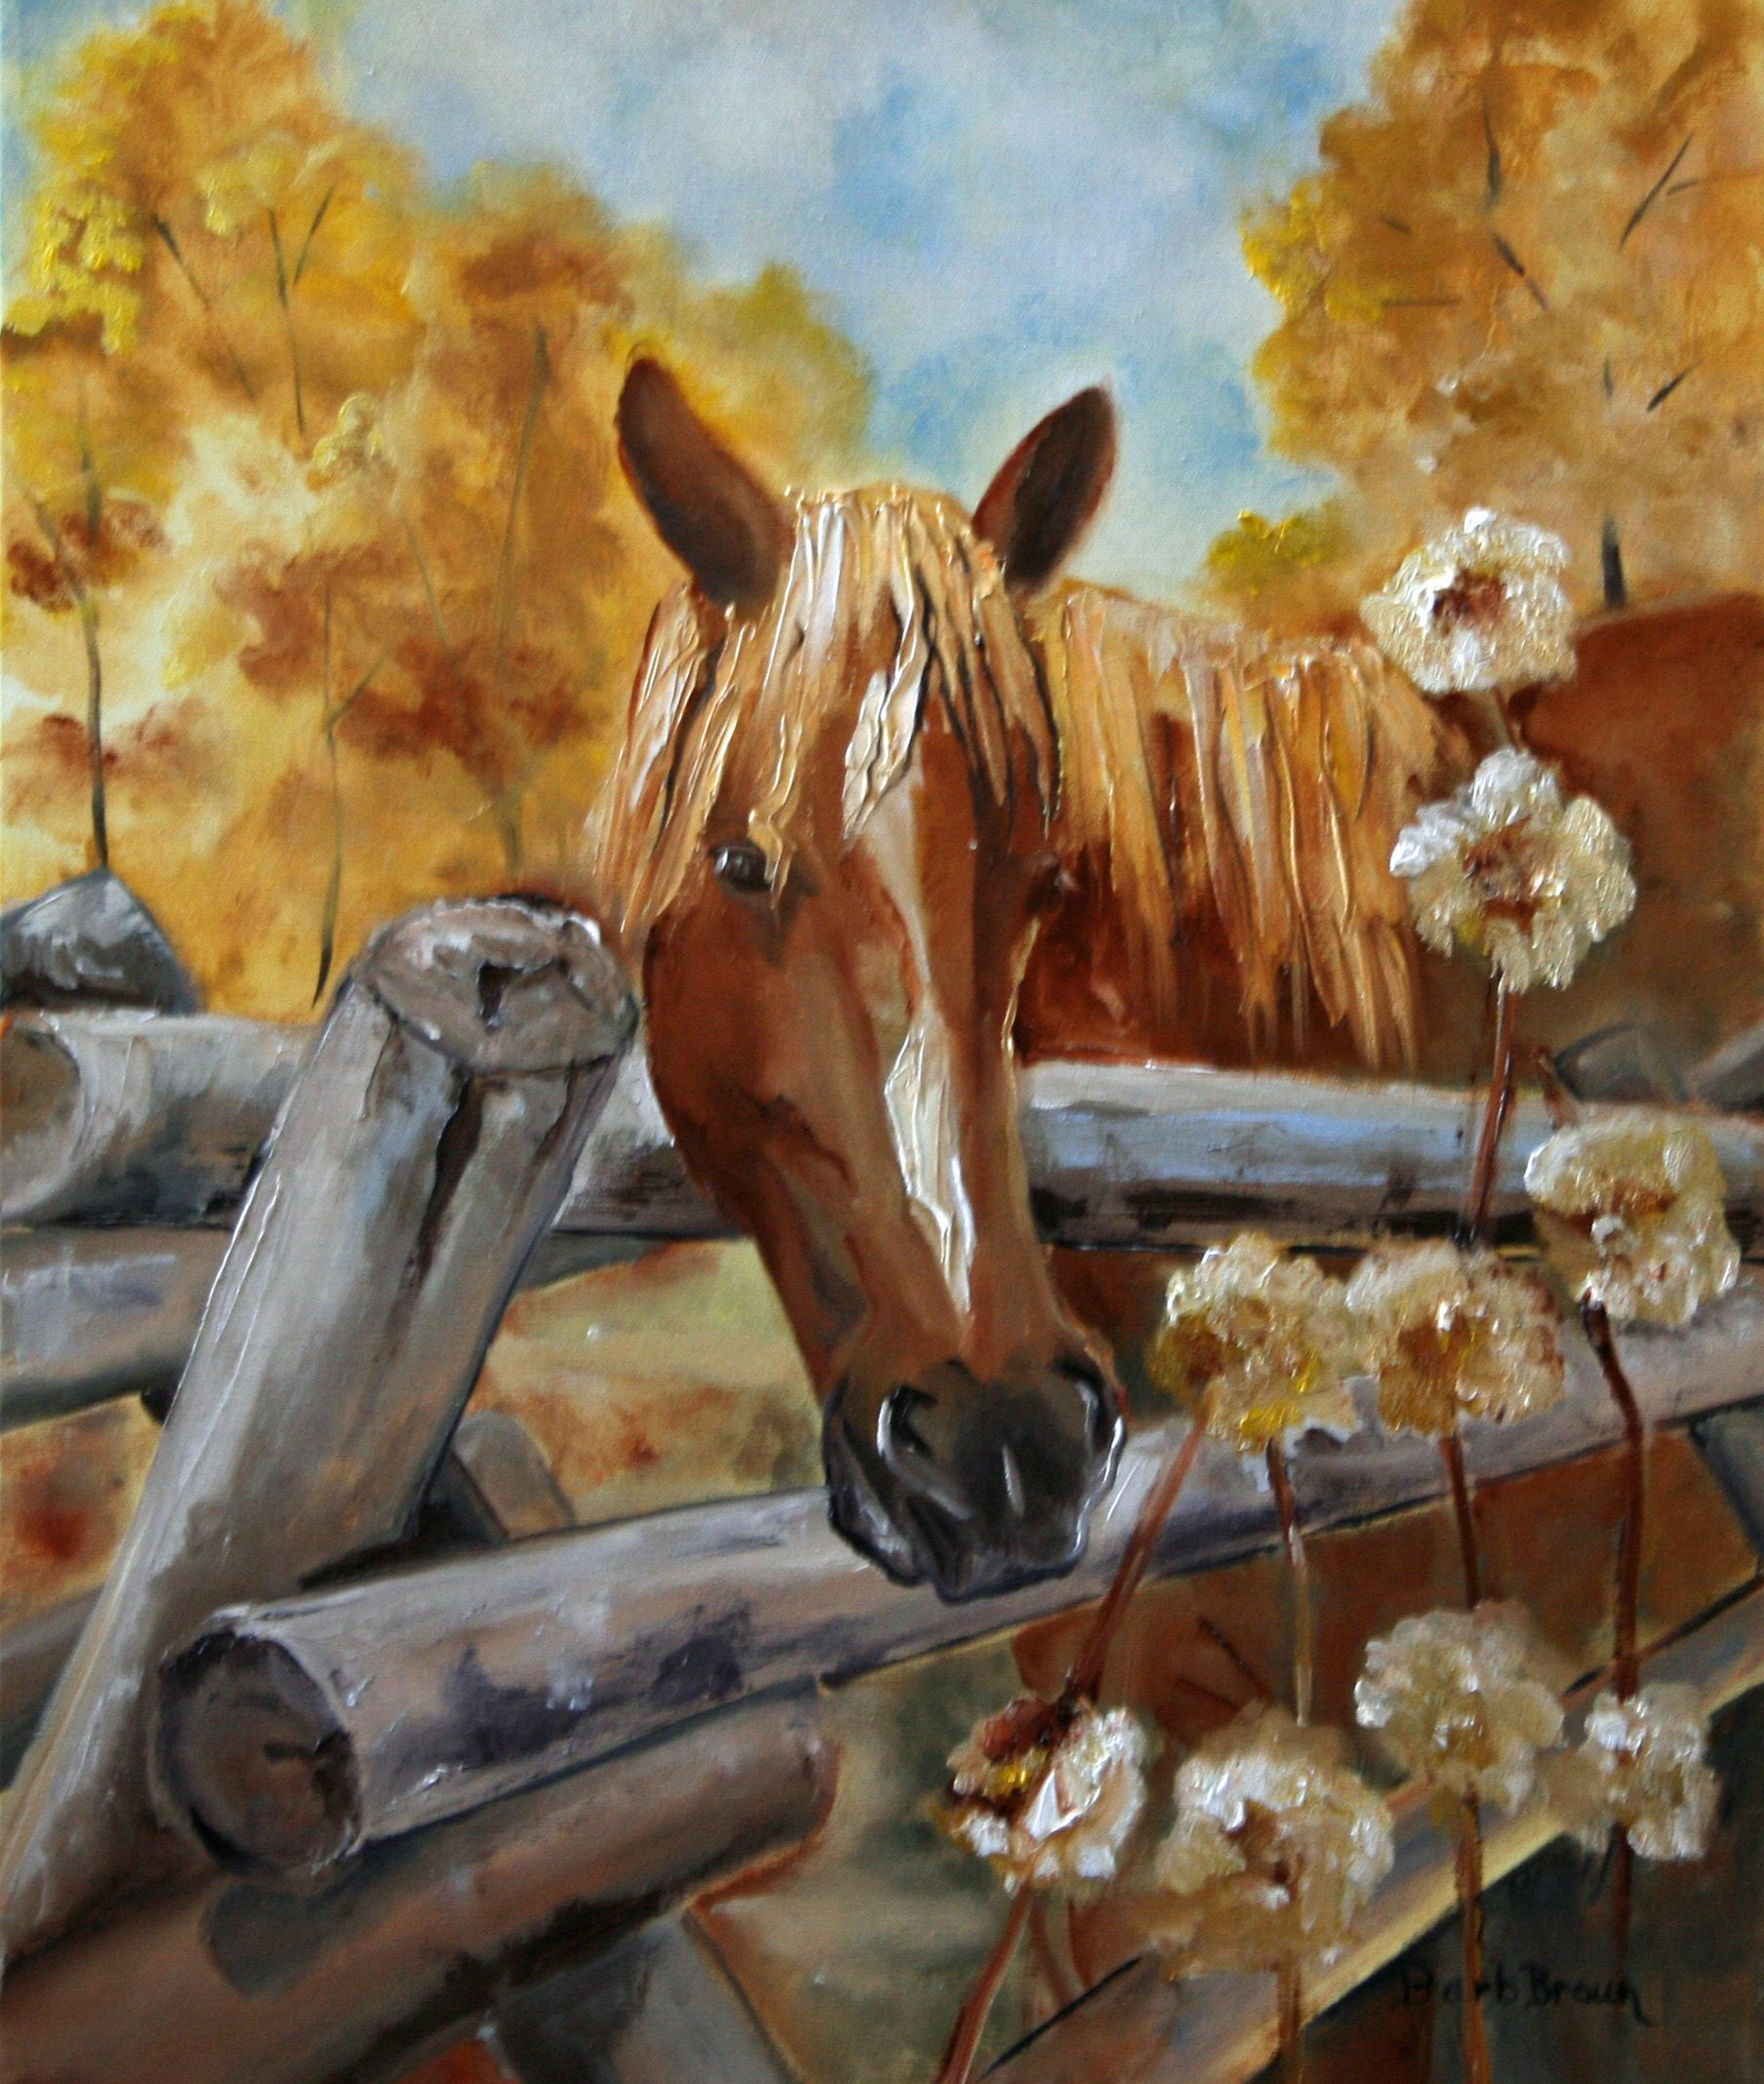 """Waiting and Watching"" www.barbbrownsart.com or https://www.etsy.com/shop/BarbBrownsFineArt?ref=shop_sugg"